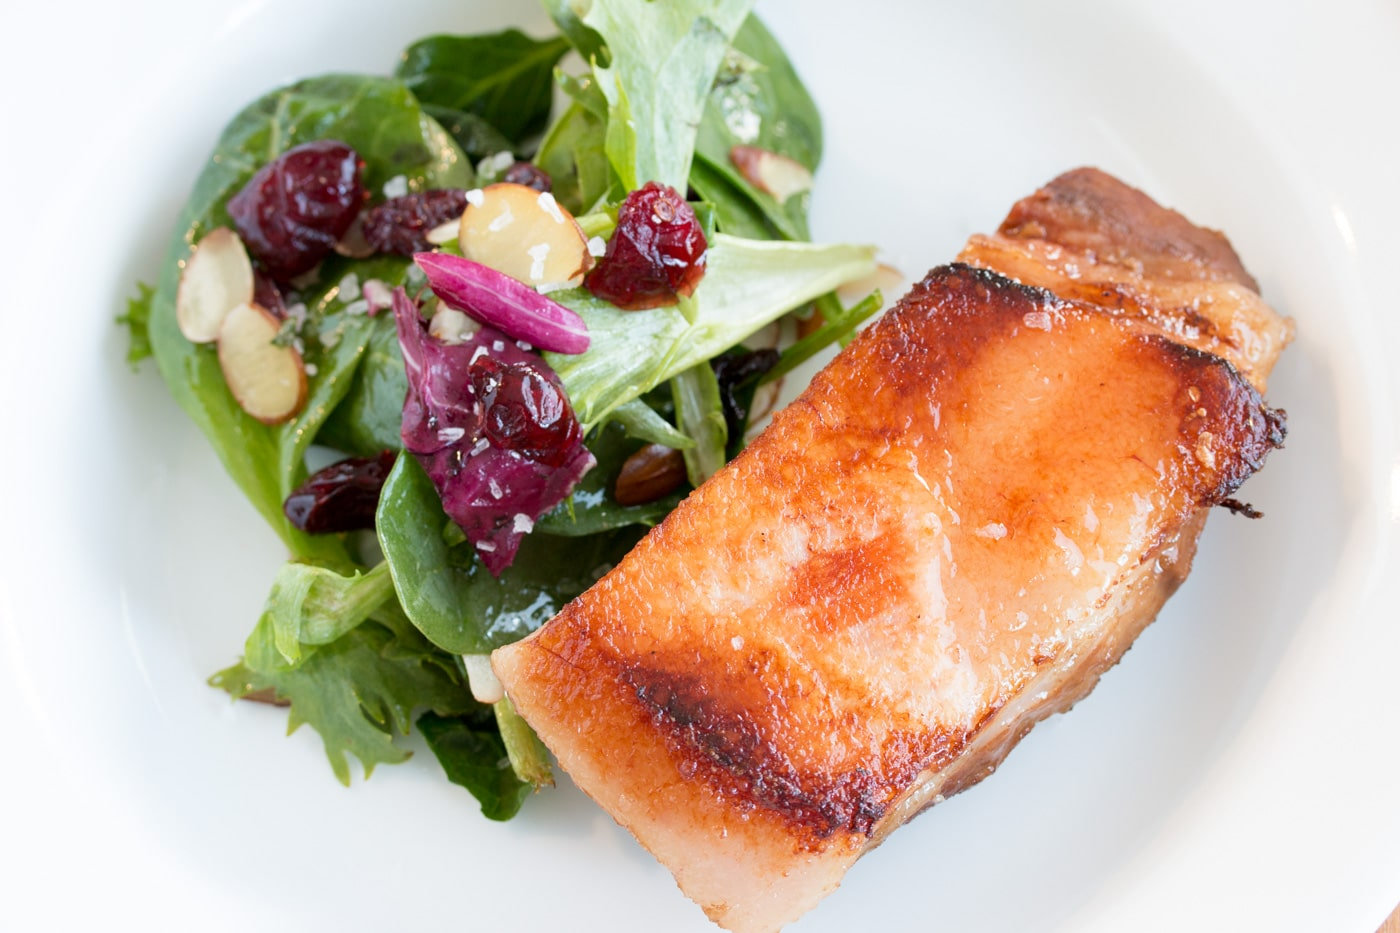 Sous Vide Pork Belly with a salad